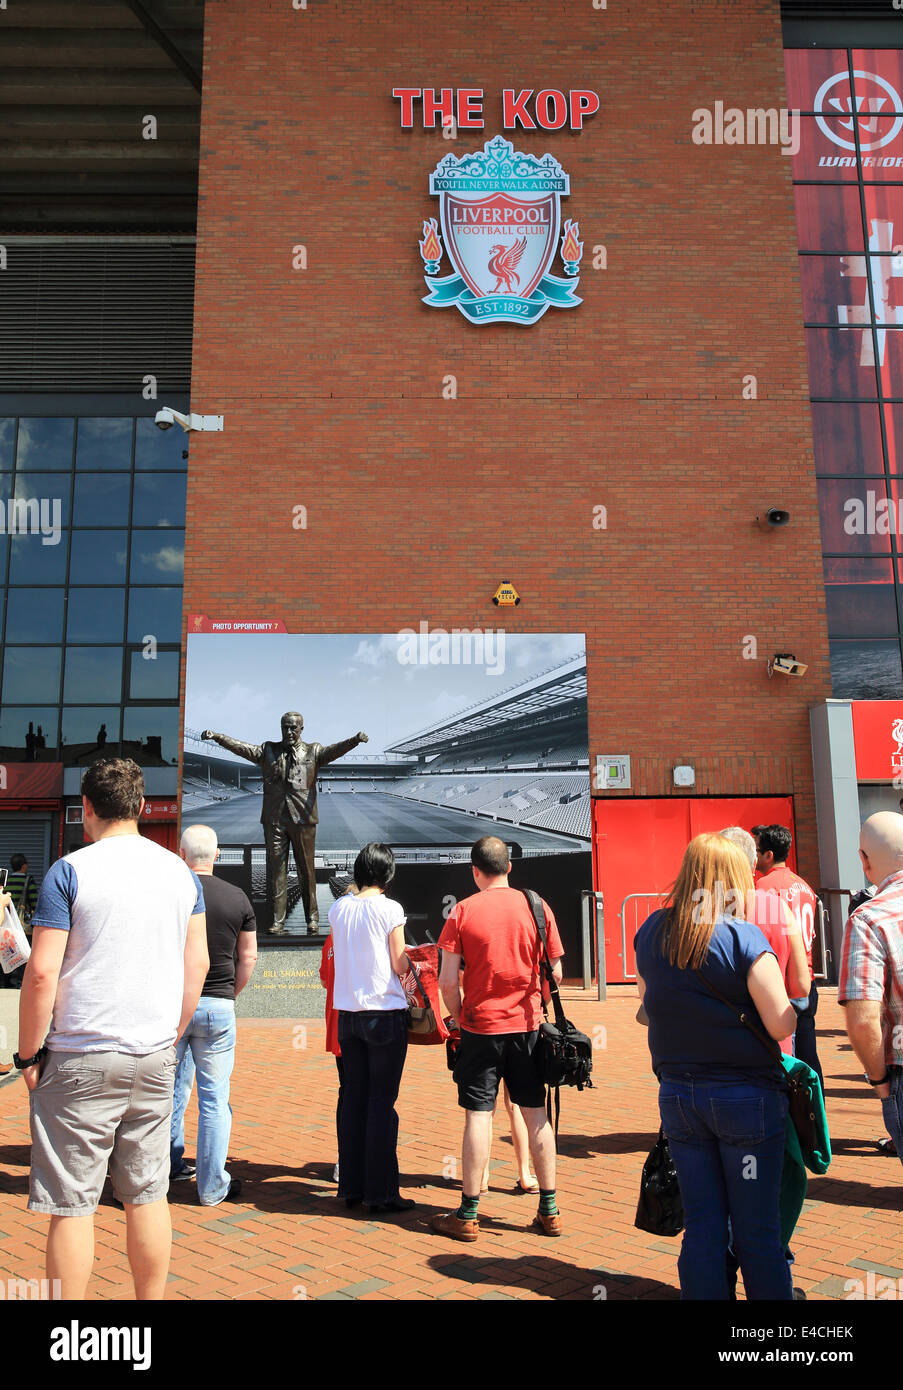 The Bill Shankly statue in front of the Kop, at Anfield, Liverpool Football Stadium, at the start of the stadium - Stock Image